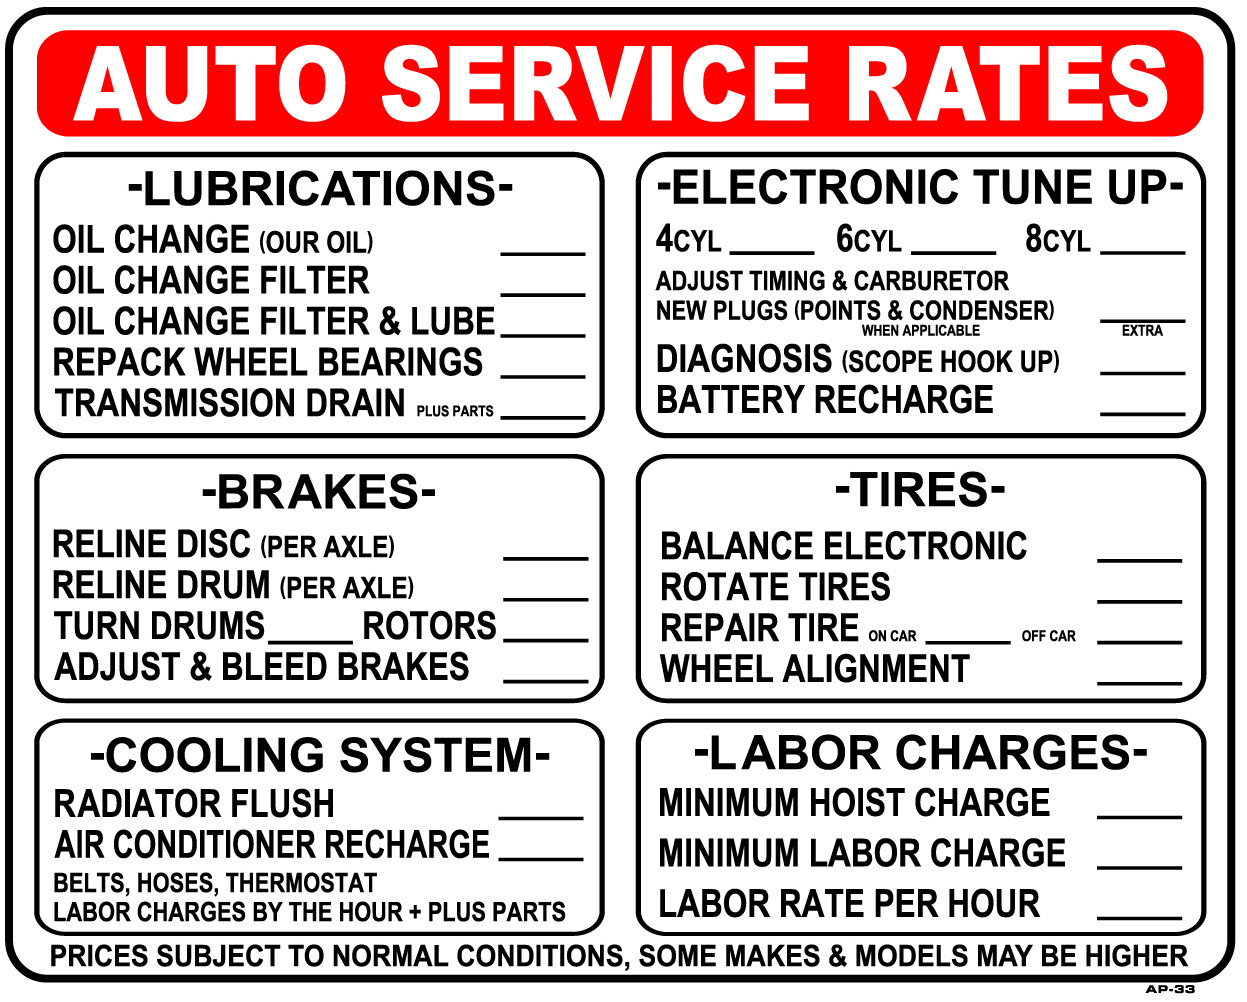 Automotive Repair Signs : Sign auto service rates in emissions depot